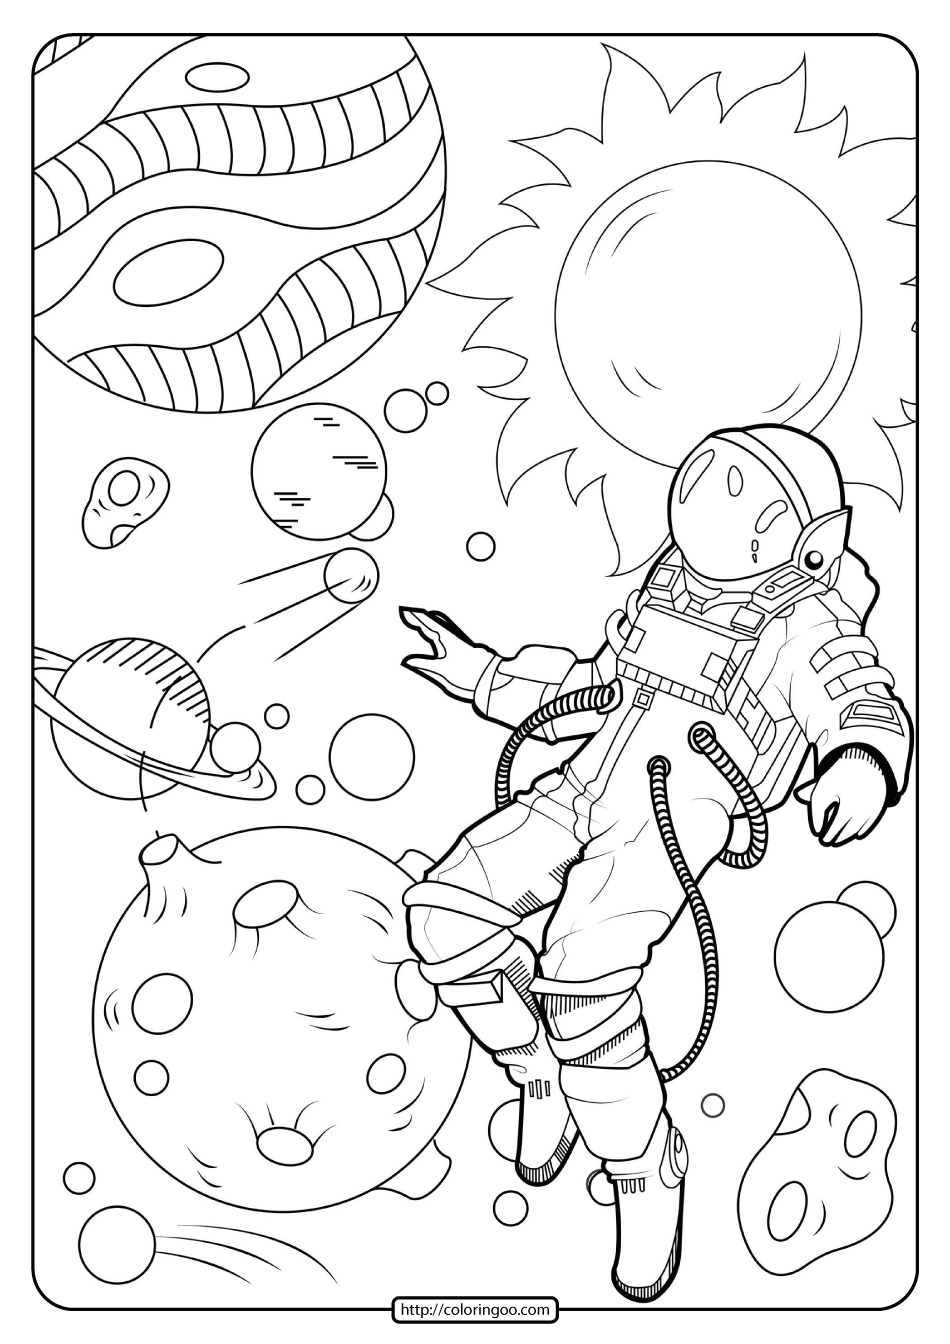 space printable coloring pages free printable astronaut in space pdf coloring page coloring space printable pages